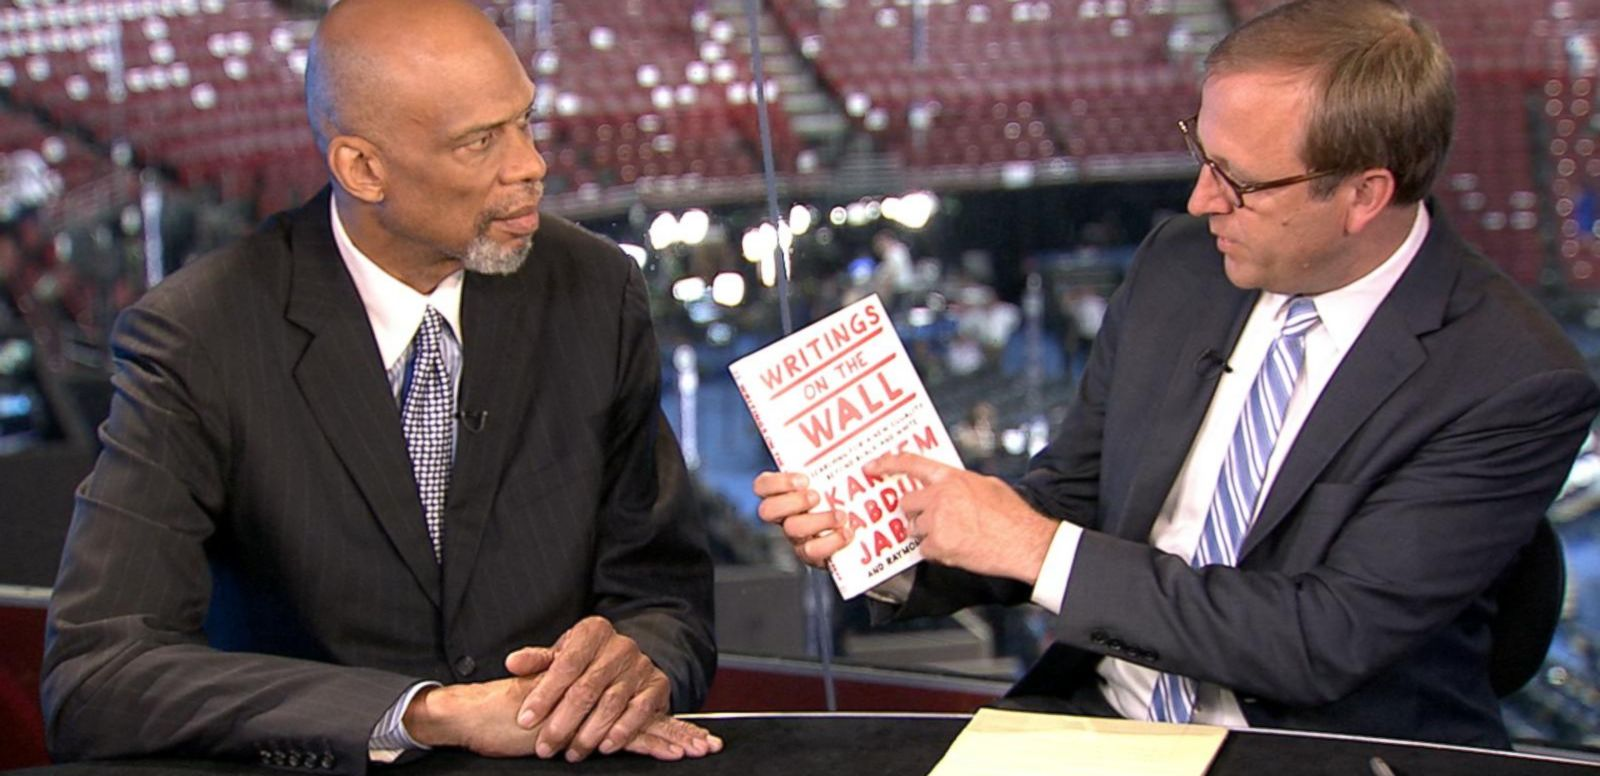 VIDEO: Catching Up With Kareem Abdul-Jabbar Ahead of His DNC Speech